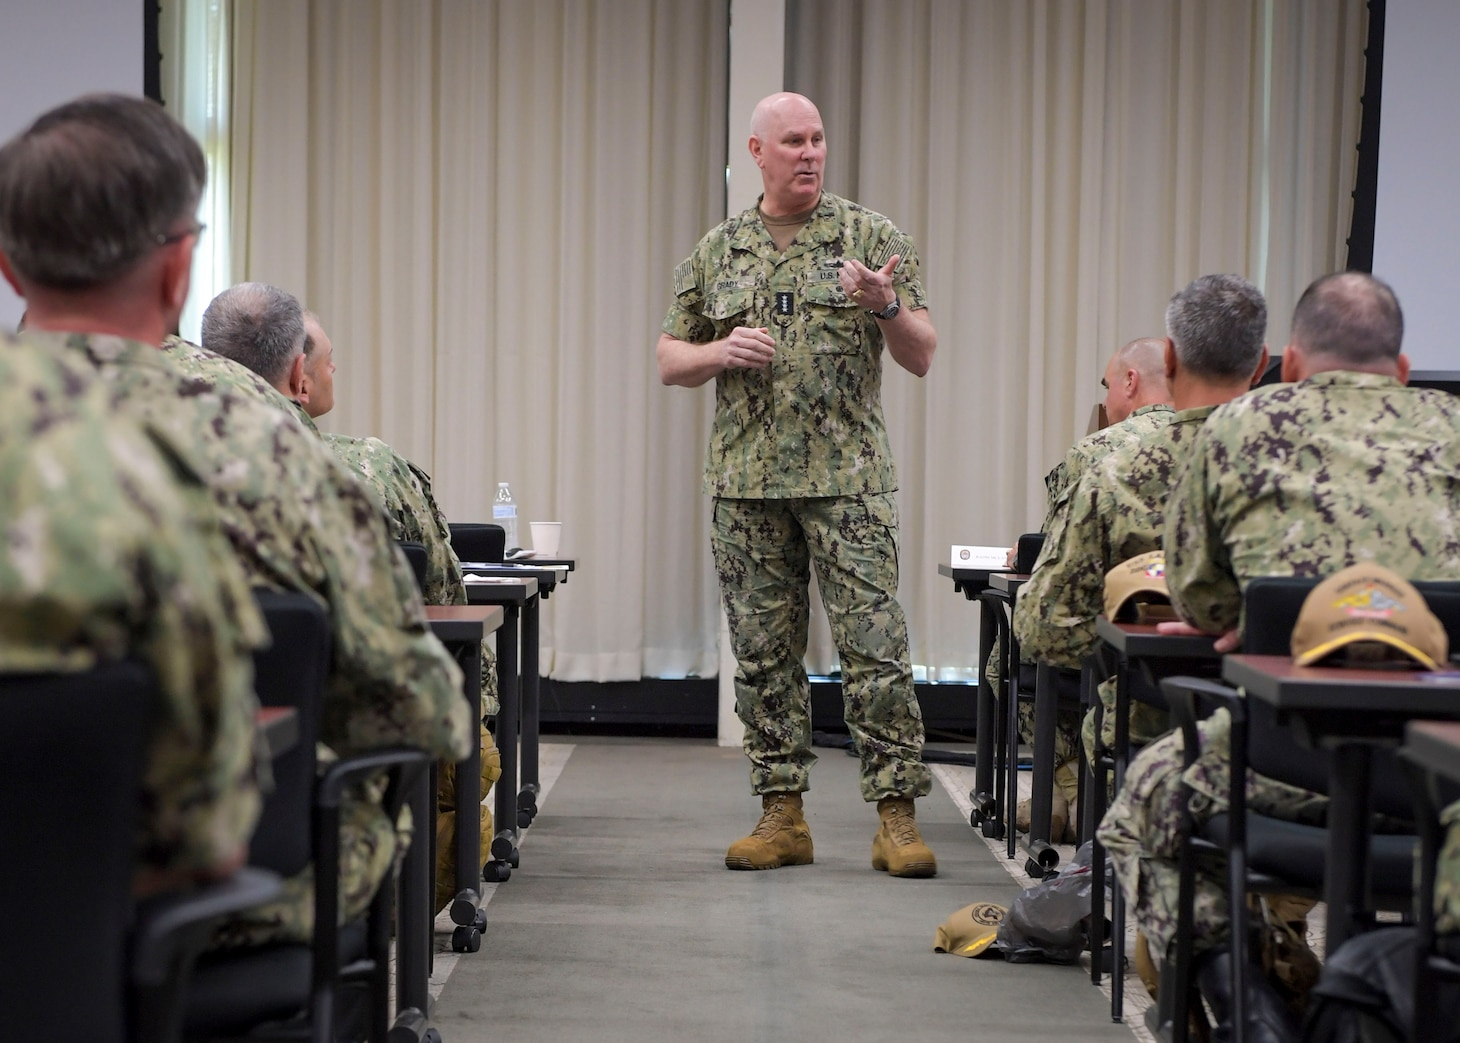 """VIRGINIA BEACH, Va. (July 23, 2021) Adm. Christopher W. Grady, commander, U.S. Fleet Forces Command, and the Navy's """"Old Salt,"""" delivers remarks at the annual Surface Force Atlantic (SURFLANT) two-day leadership training symposium at Drexler Manor Conference Center on Joint Expeditionary Base Little Creek-Fort Story, July 23. The event emphasized SURFLANT's top priority, which is to provide combat-ready ships and battle-minded crews that are prepared to fight and win operations in a strategic competition. (U.S. Navy photo by Mass Communication Specialist 1st Class Jacob Milham/Released)"""